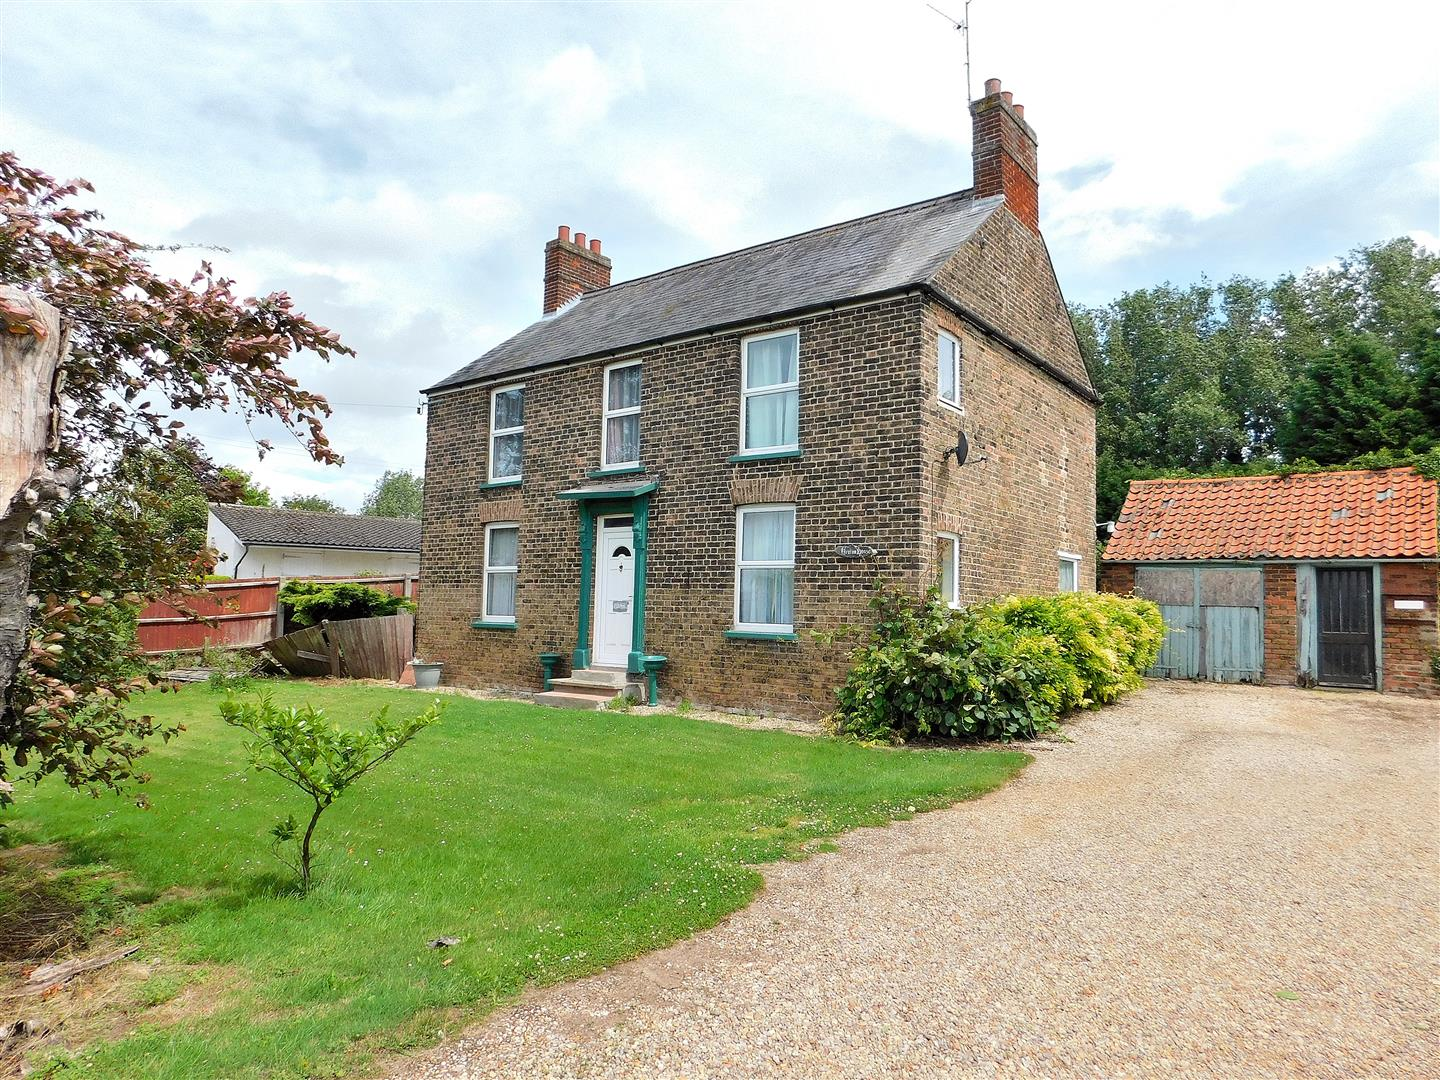 4 bed detached house for sale in Orange Row Road, King's Lynn  - Property Image 1